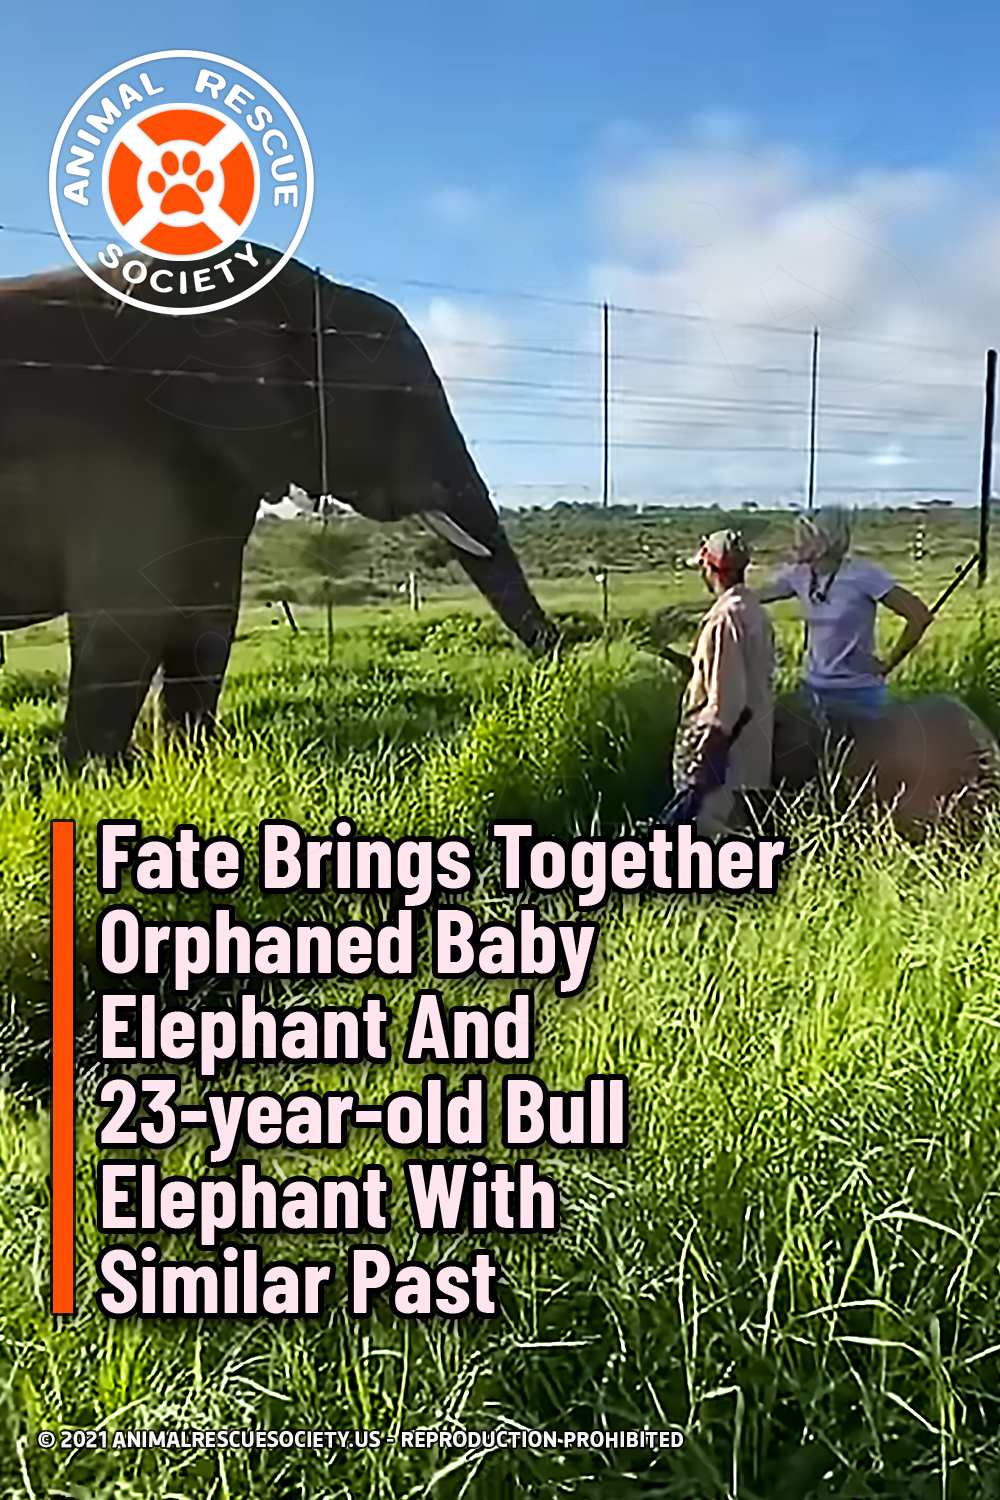 Fate Brings Together Orphaned Baby Elephant And 23-year-old Bull Elephant With Similar Past